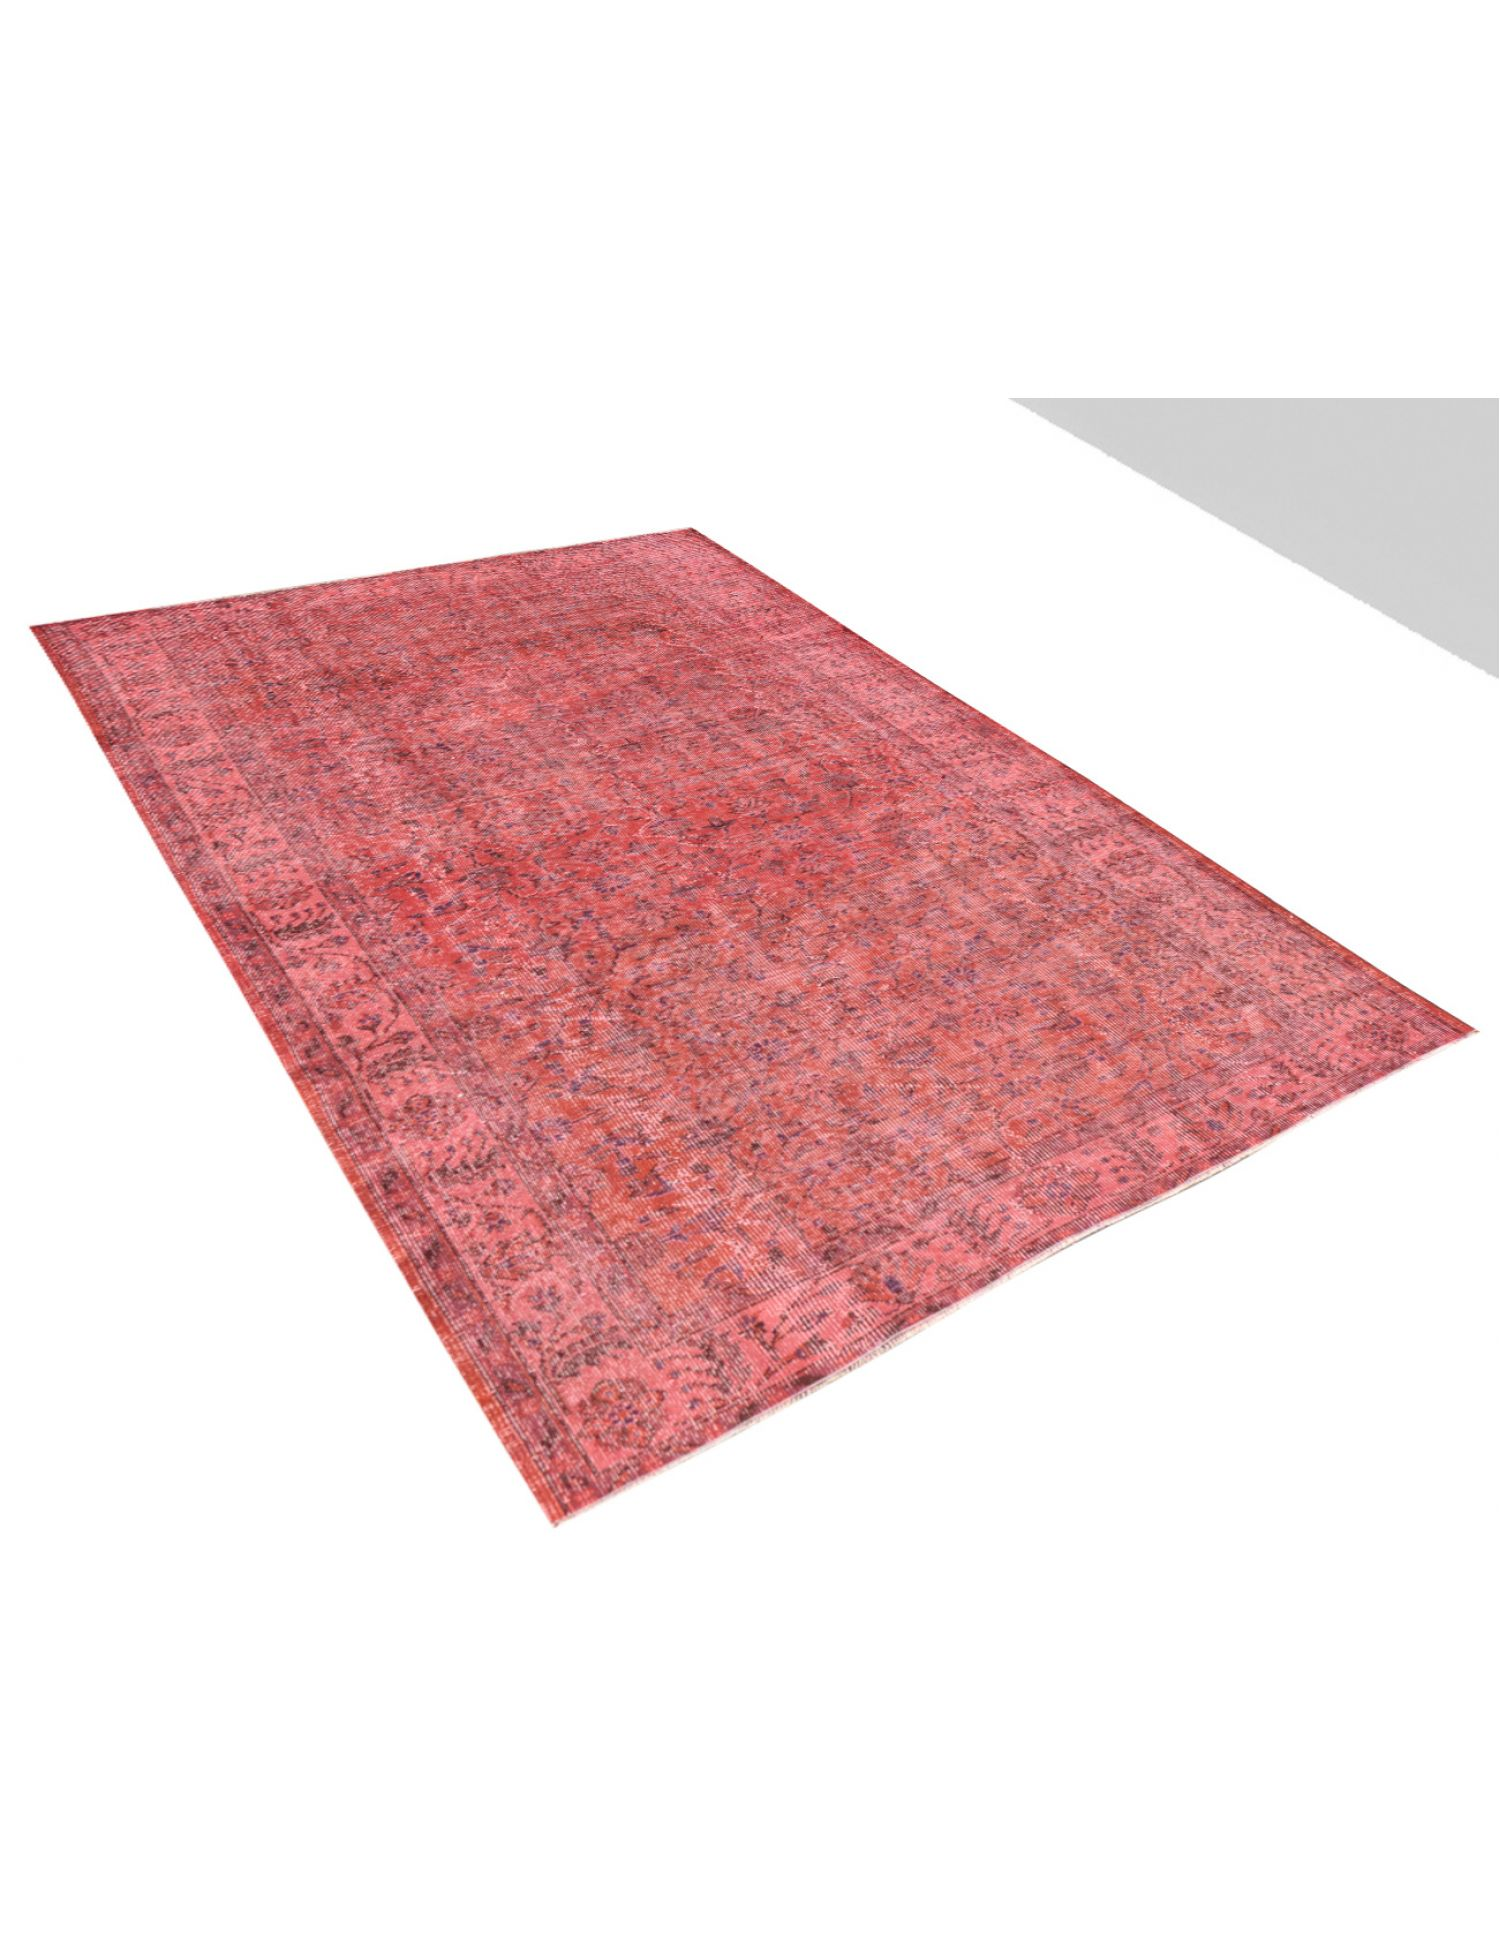 Vintage Carpet  red <br/>273 x 159 cm